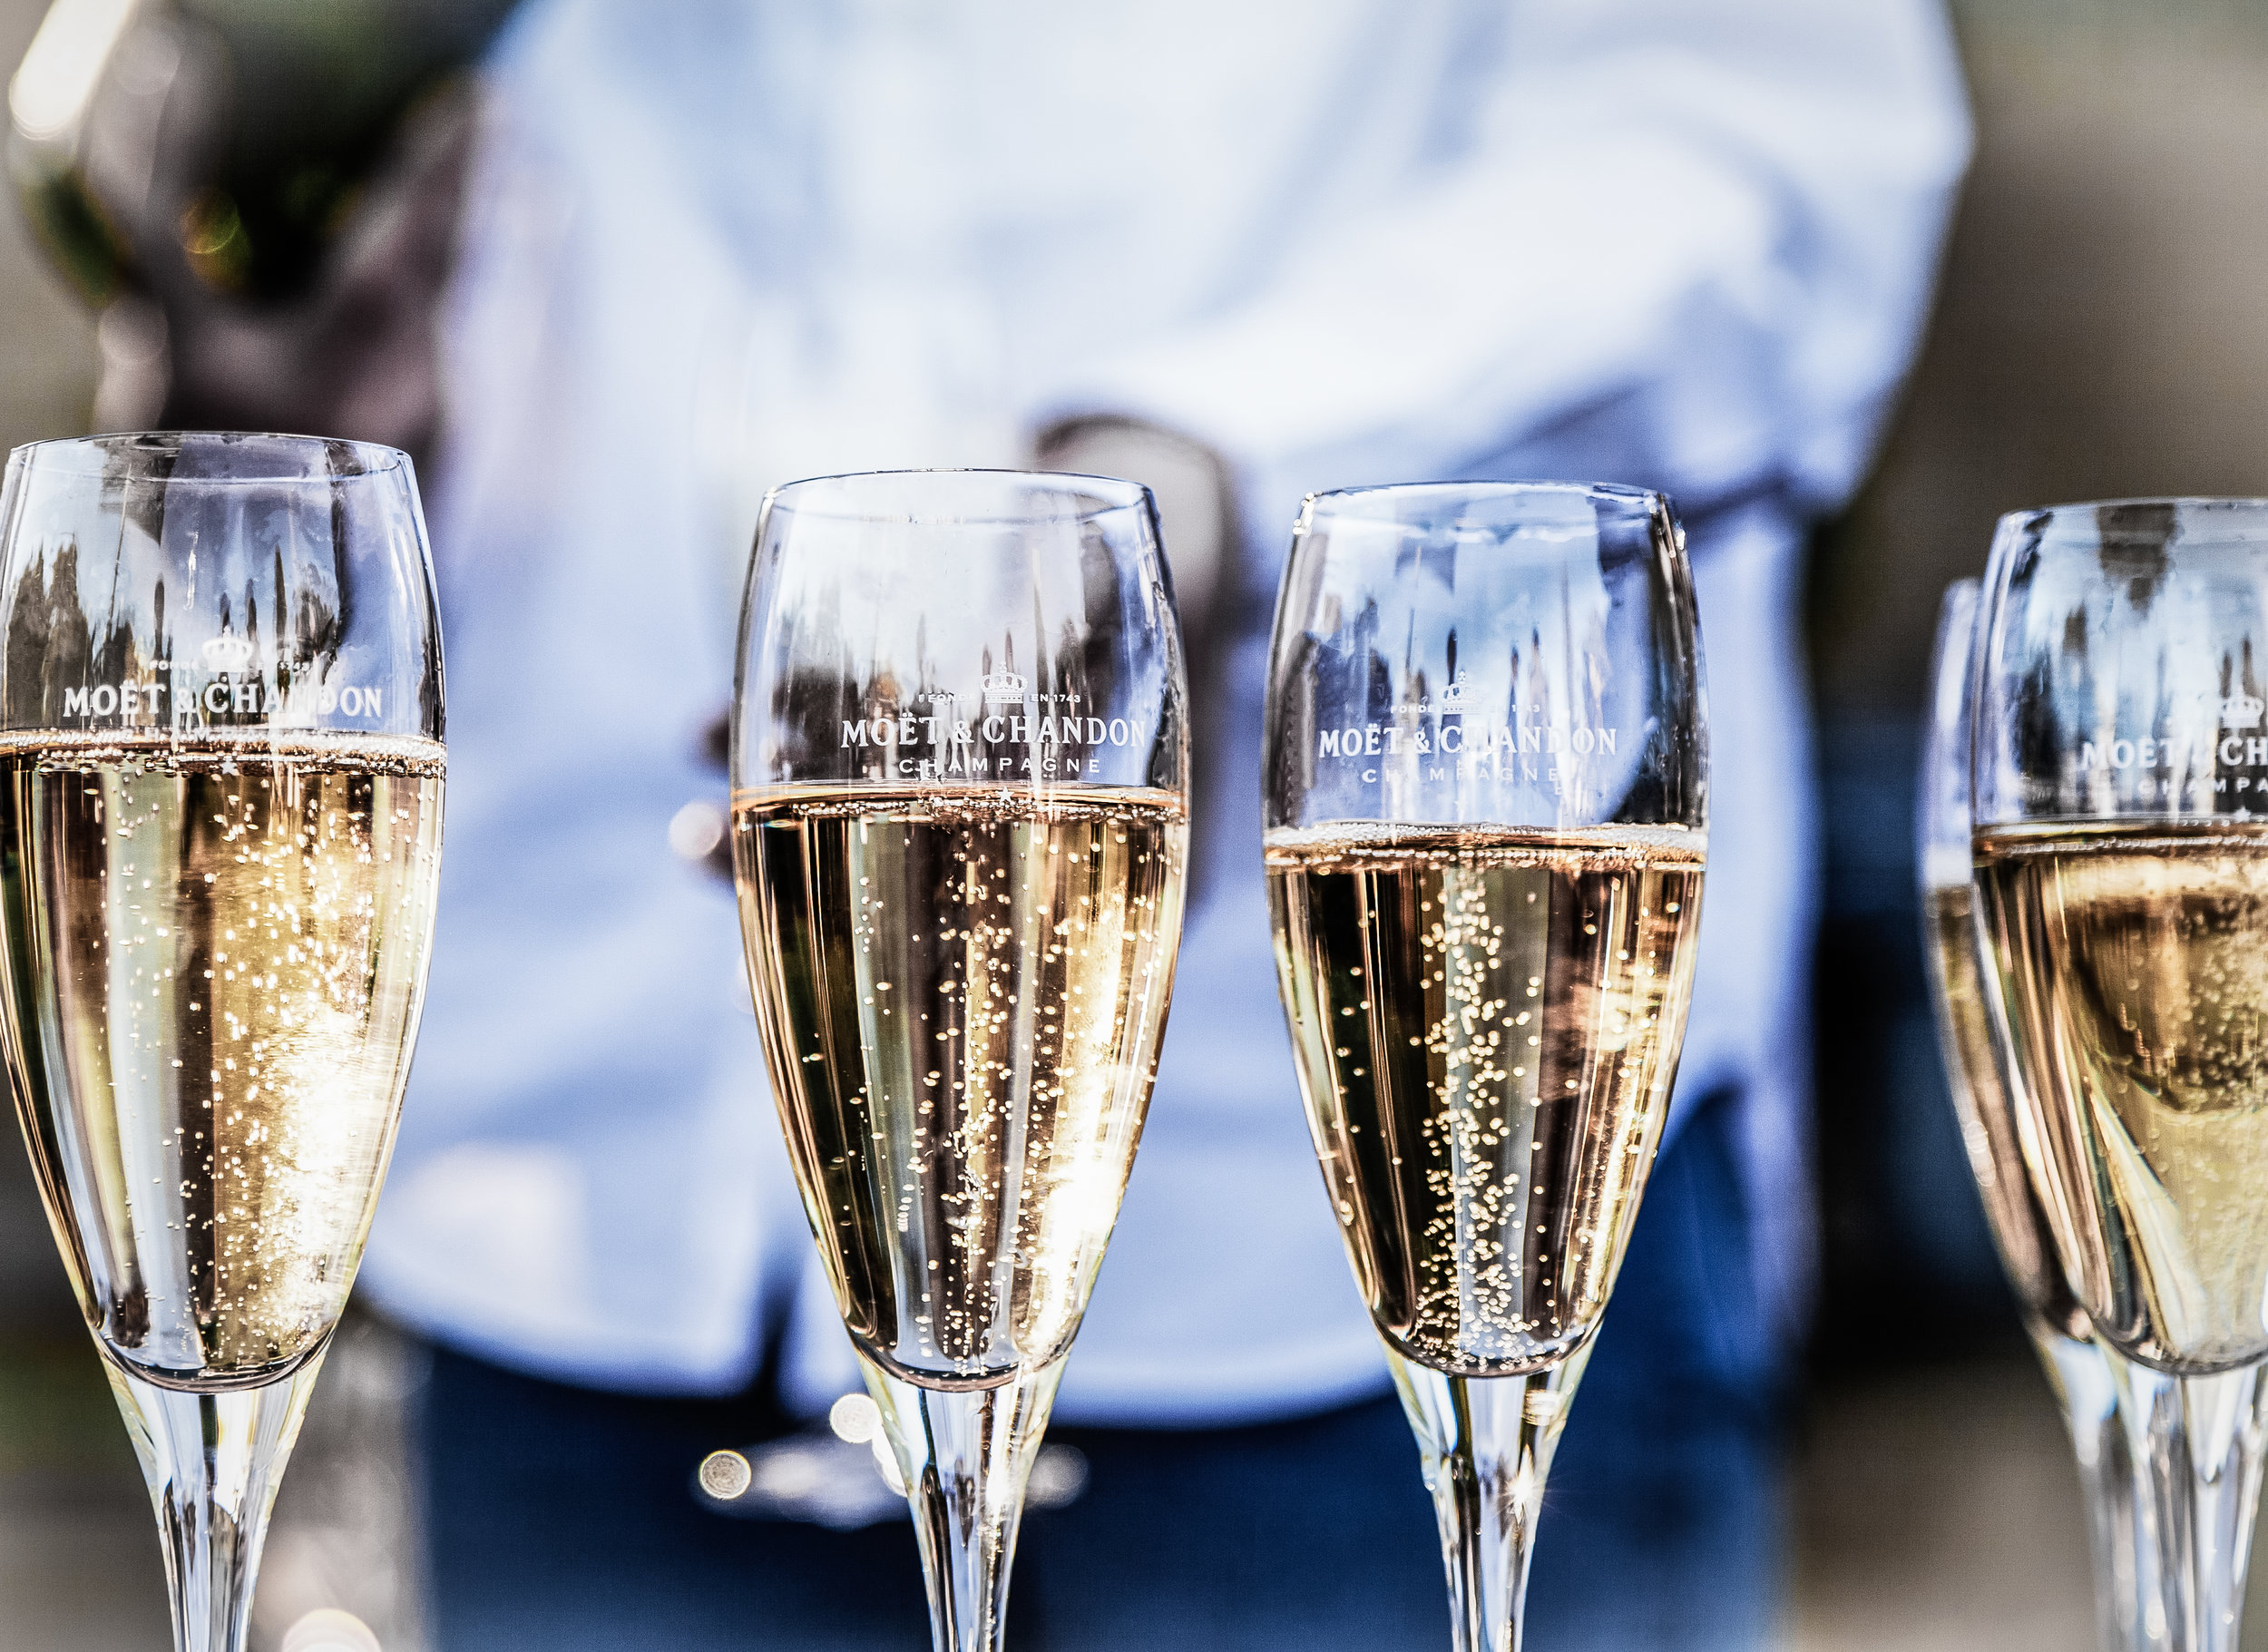 All About Bubbly - August 15, 2019 6pm - 10 pmHouston Zoo After Dark6200 Herman Park Dr., Houston, TX 77030Admission: Ticket : $35